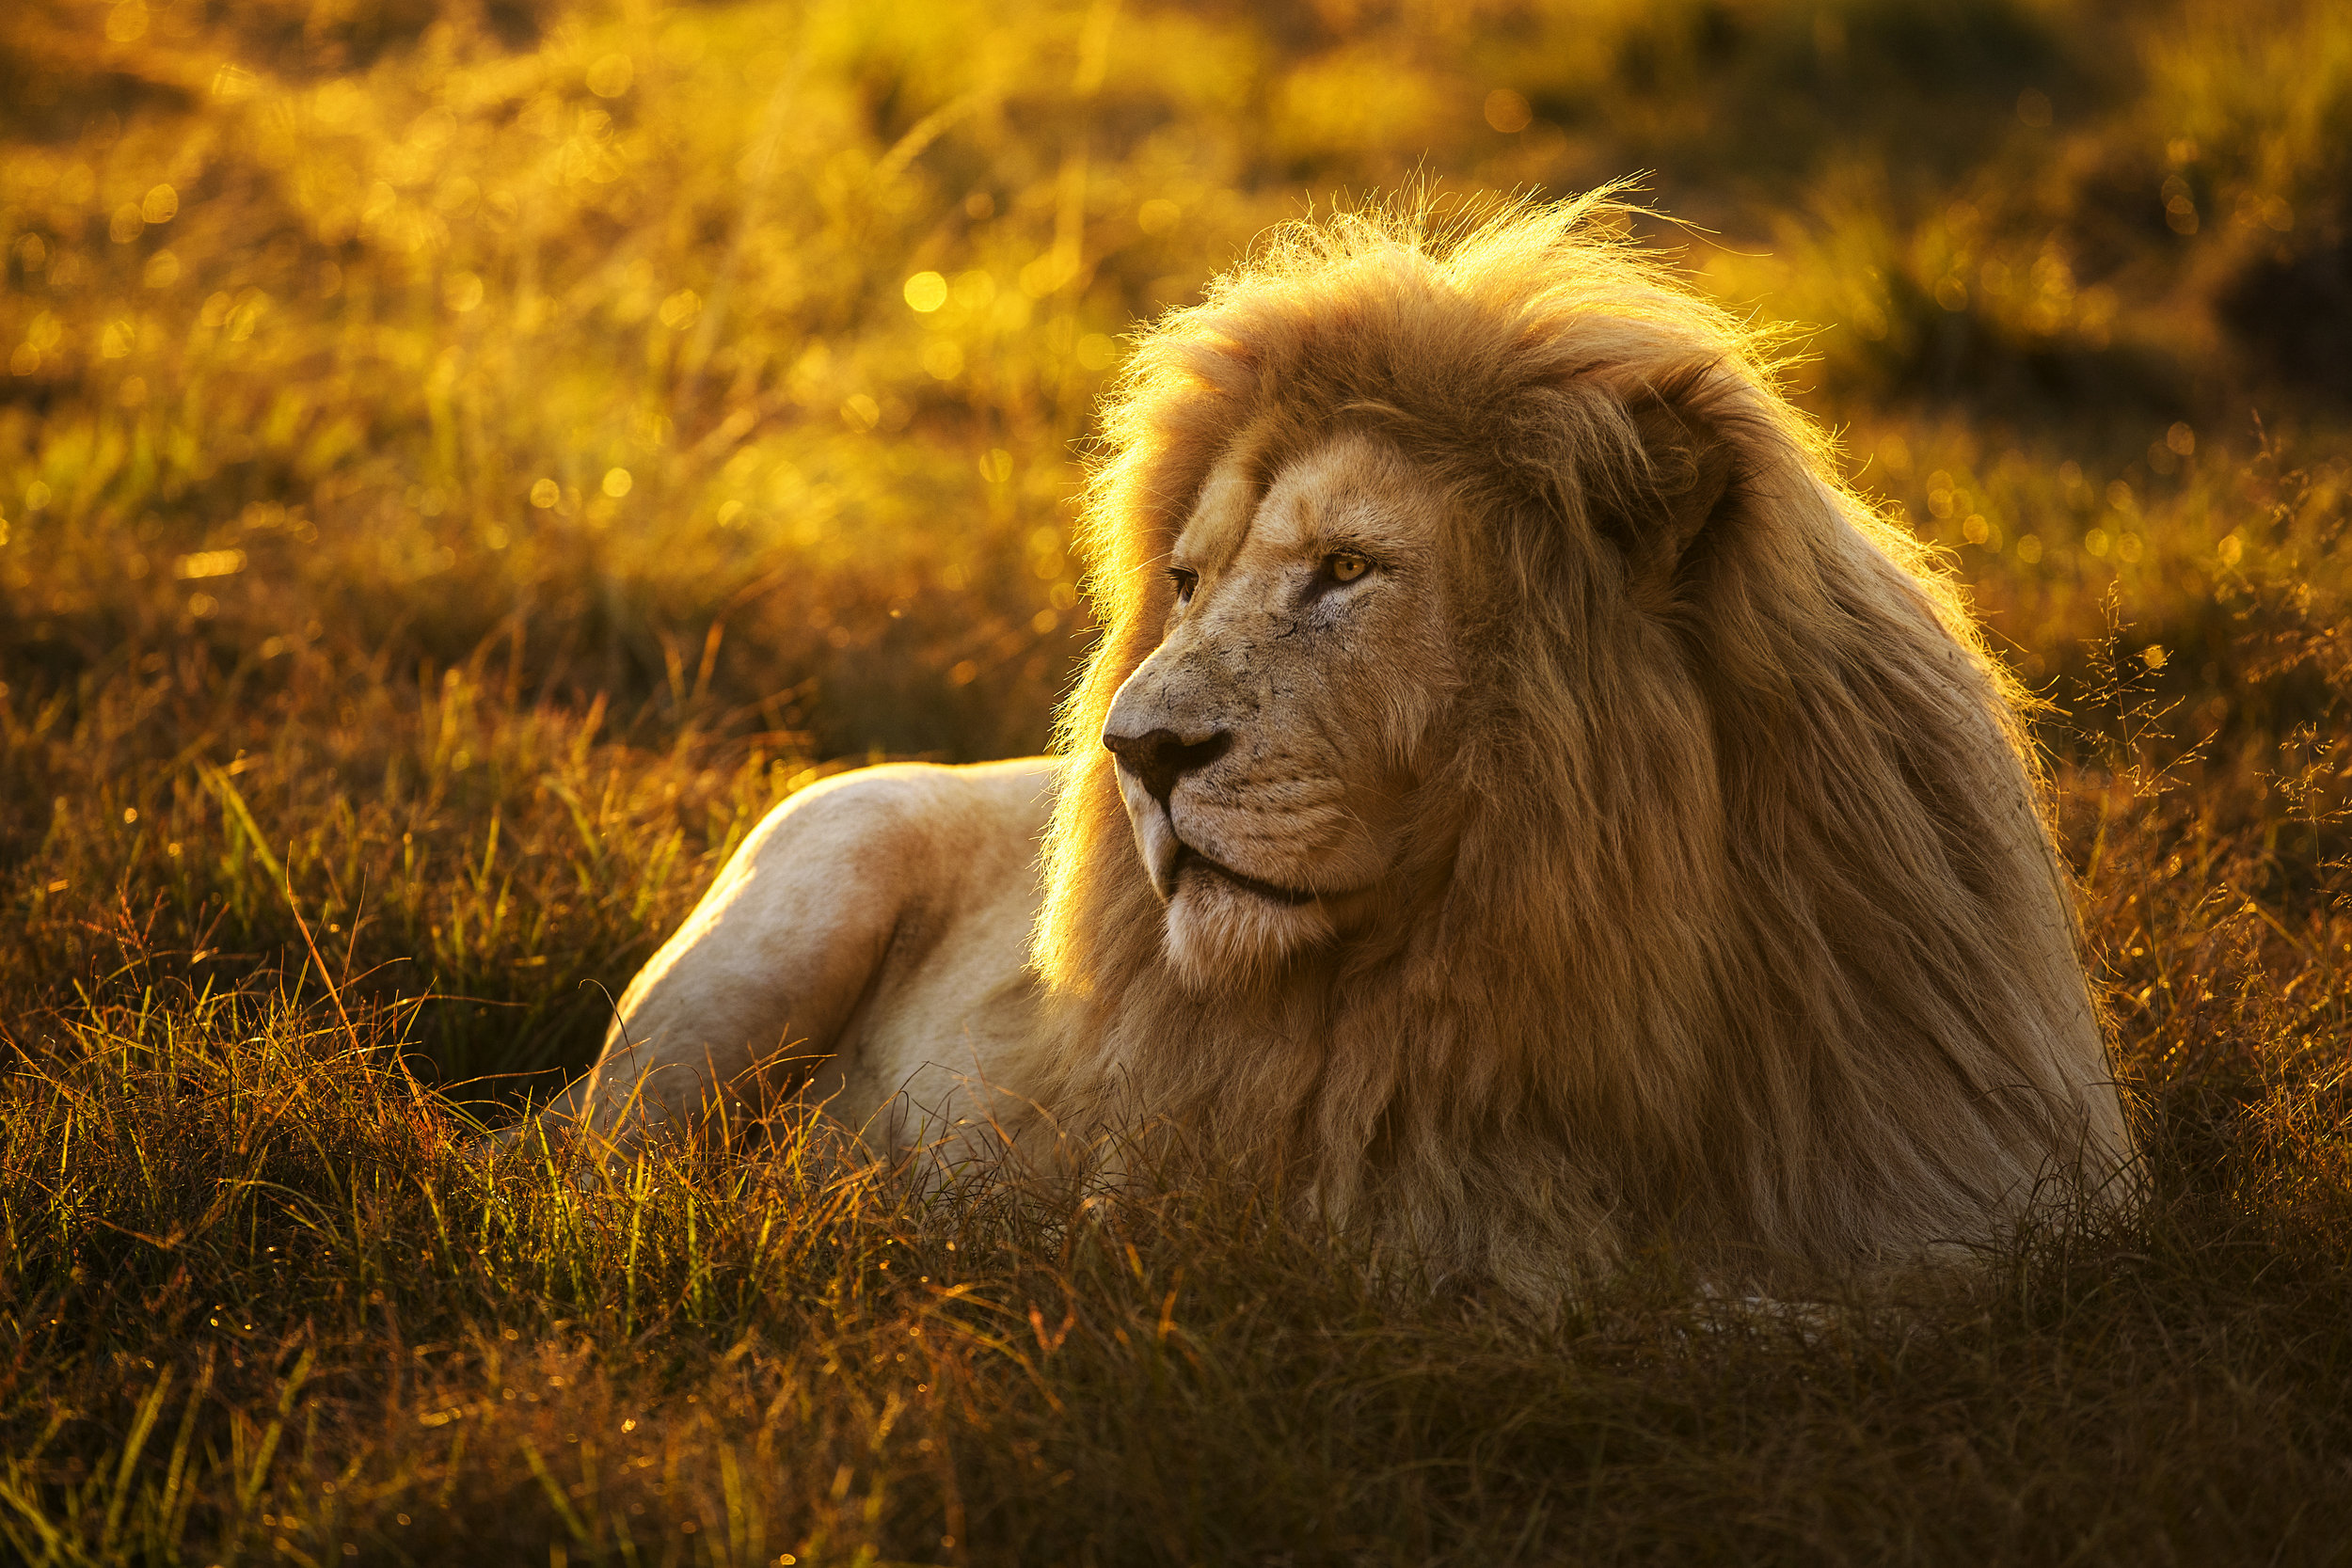 Simon+Needham+Humanitarian+Photography+Lions+of+Africa+6.jpg